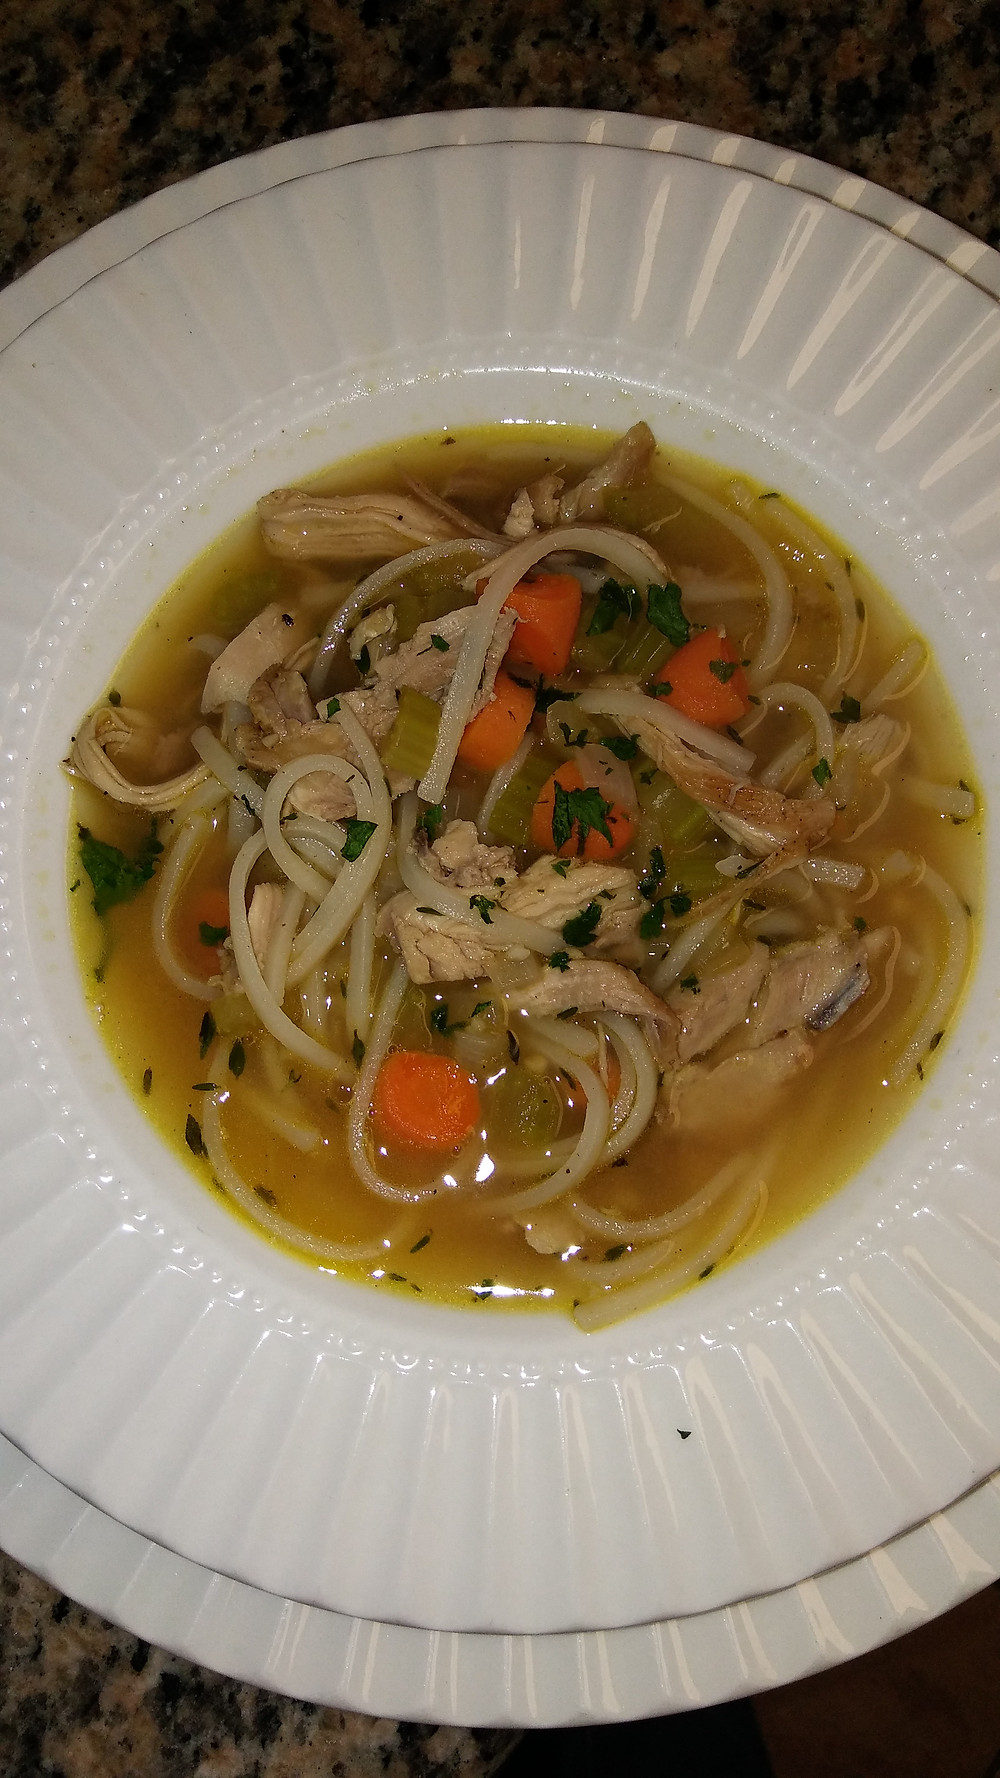 chicken noodle soup with low sodium broth, Thai rice noodles, chicken and vegetables